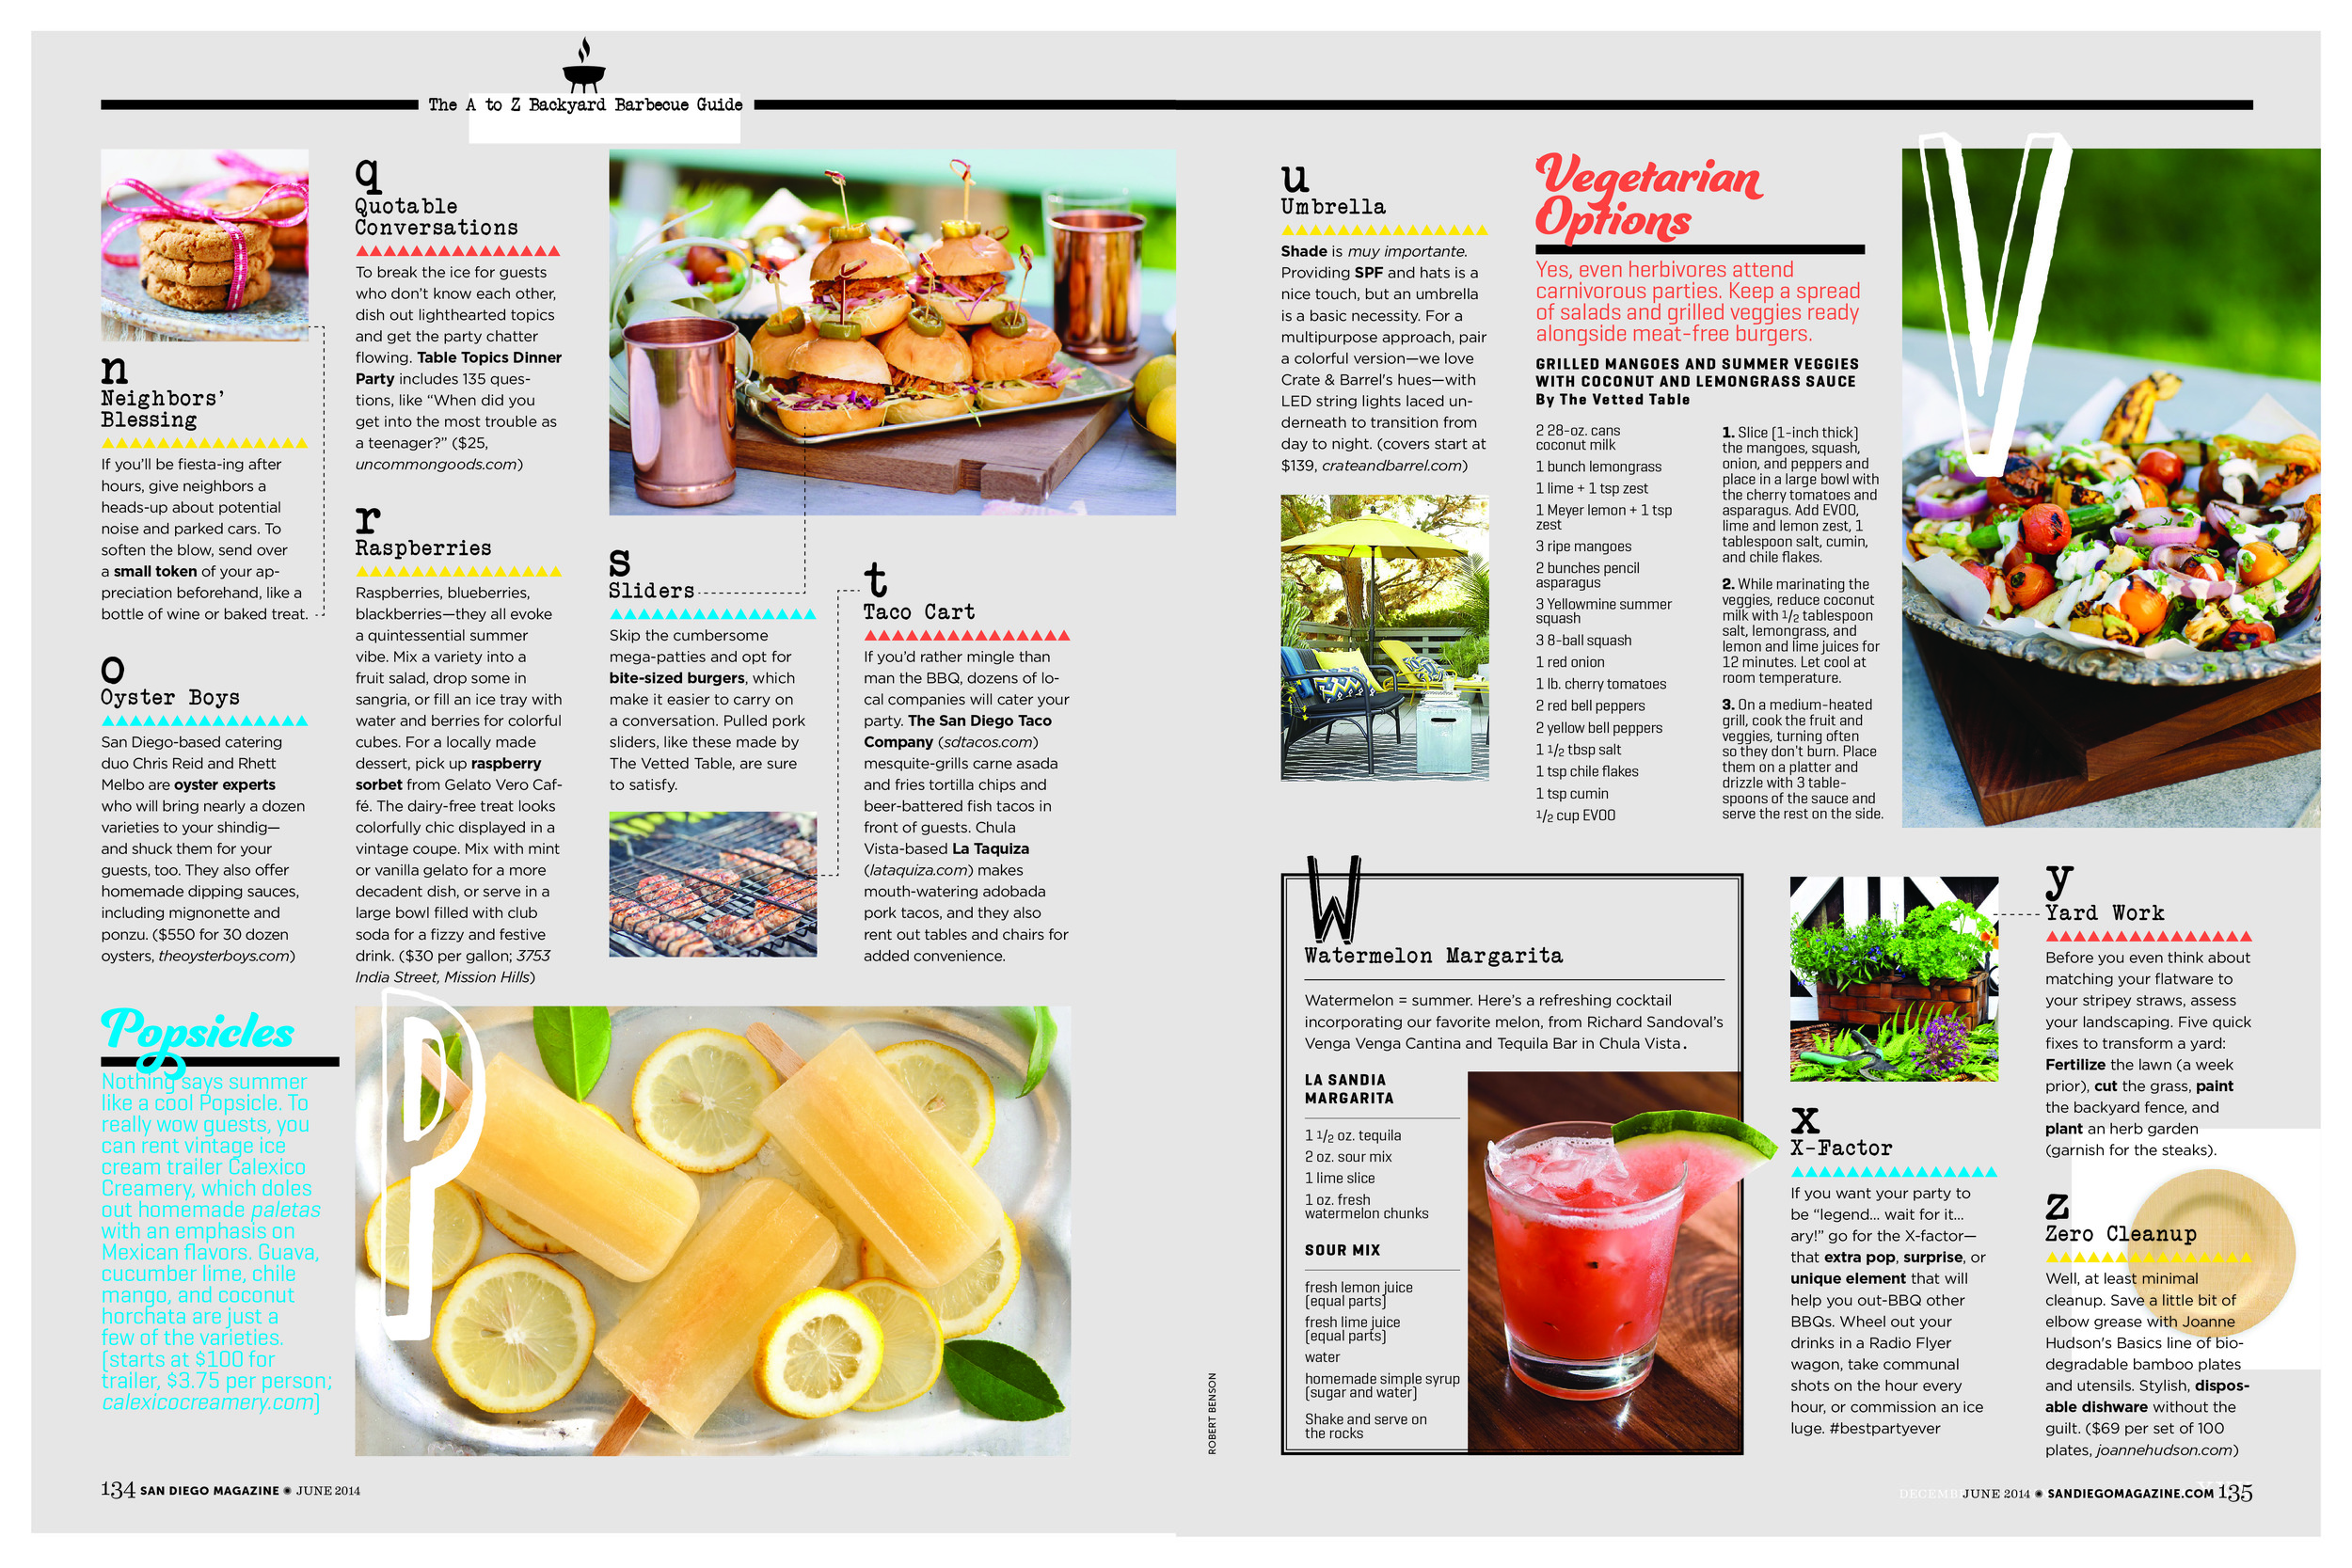 website magazine spreads4.jpg